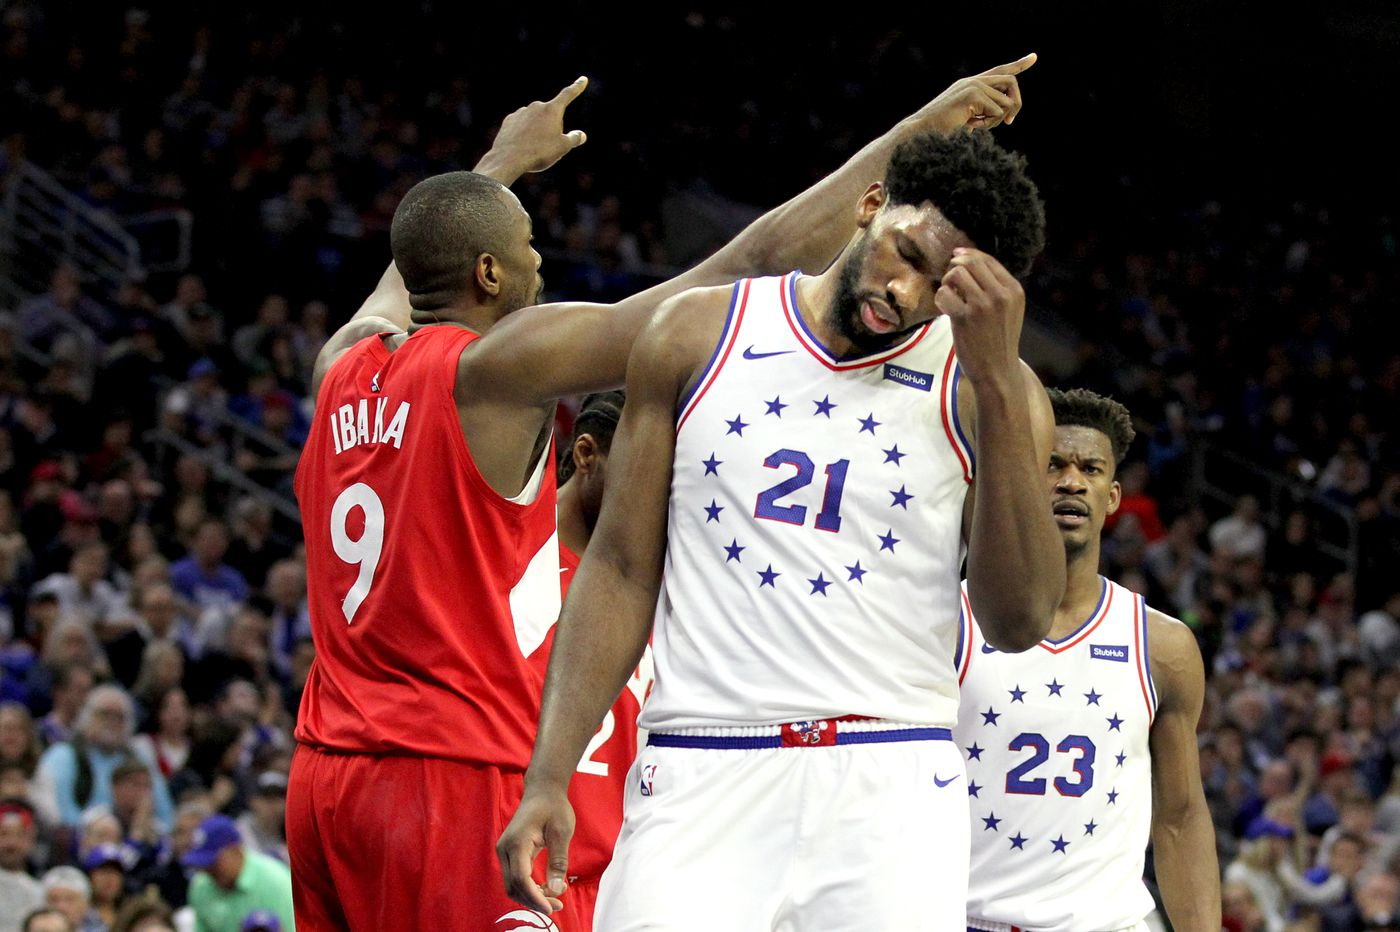 Sixers' Joel Embiid listed as probable for Game 5 vs. Raptors with upper respiratory infection